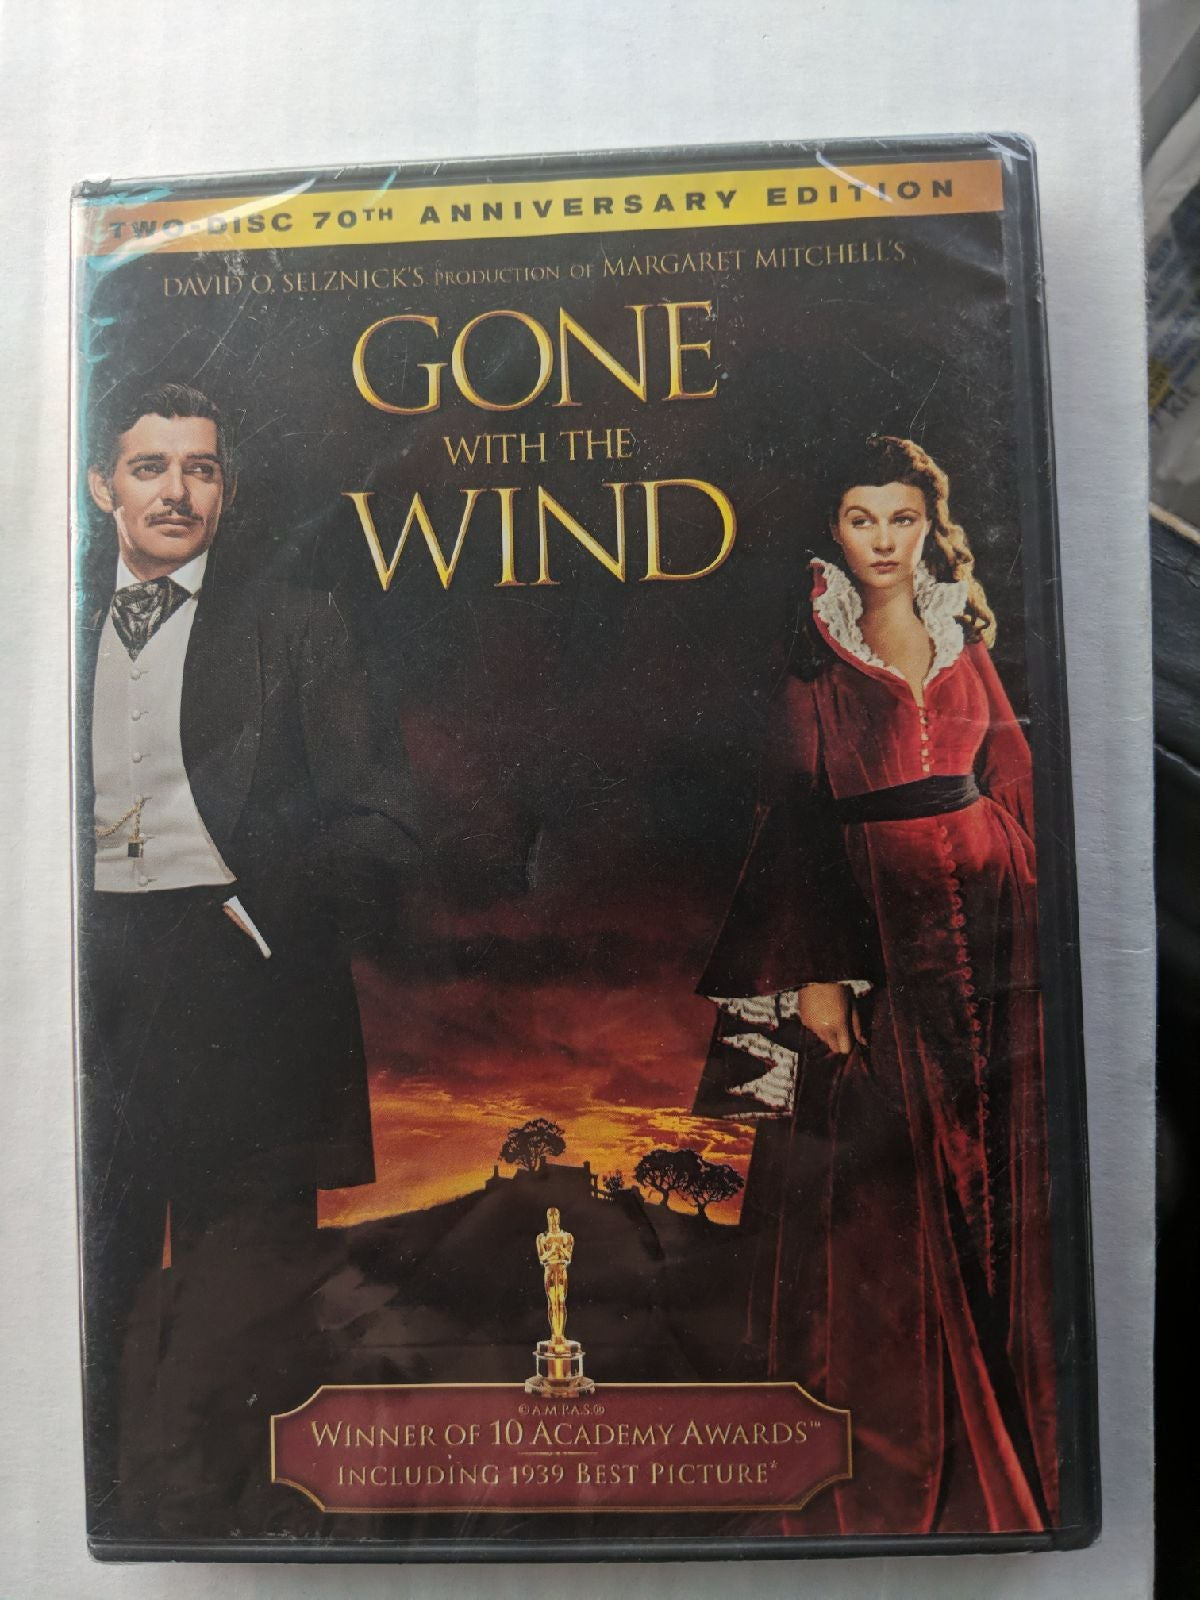 gone with the wind 2 disc 70th Dvd set